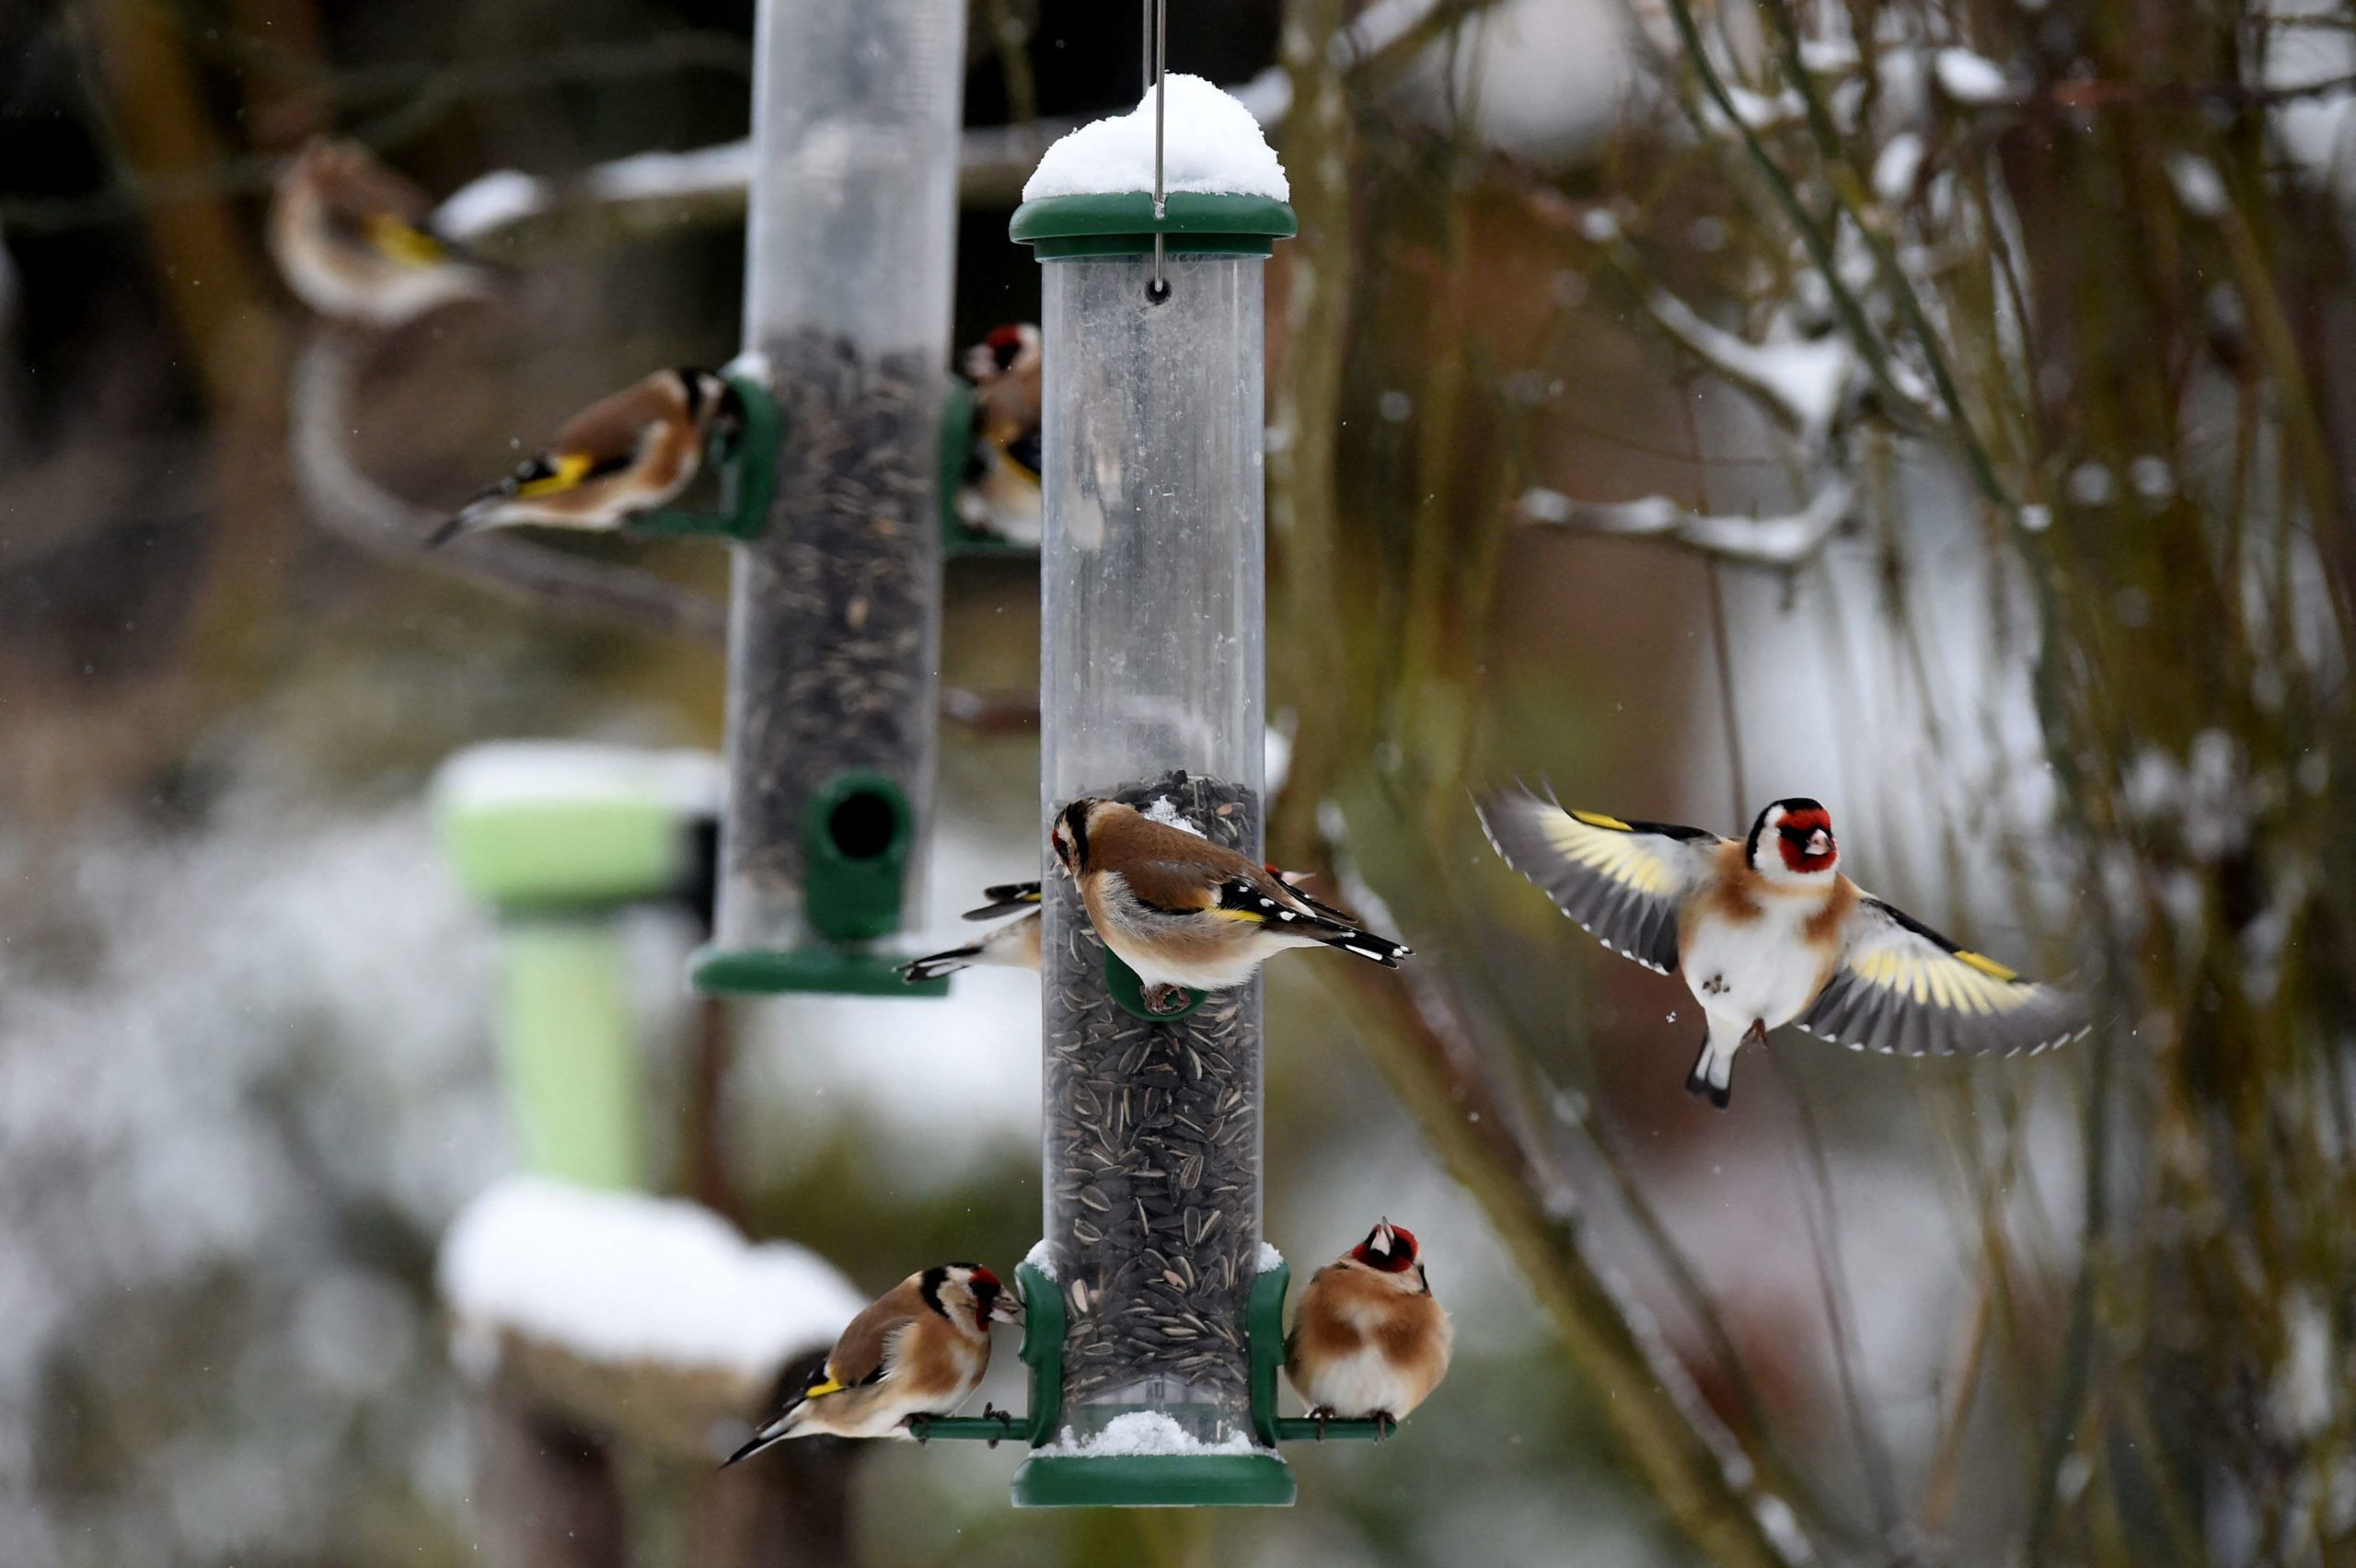 European goldfinches eat from a hanging bird feeder hanging in a garden following an overnight snowfall in Illiers-Combray, centeral France, on February 10, 2021. (Photo by JEAN-FRANCOIS MONIER / AFP) (Photo by JEAN-FRANCOIS MONIER/AFP via Getty Images)